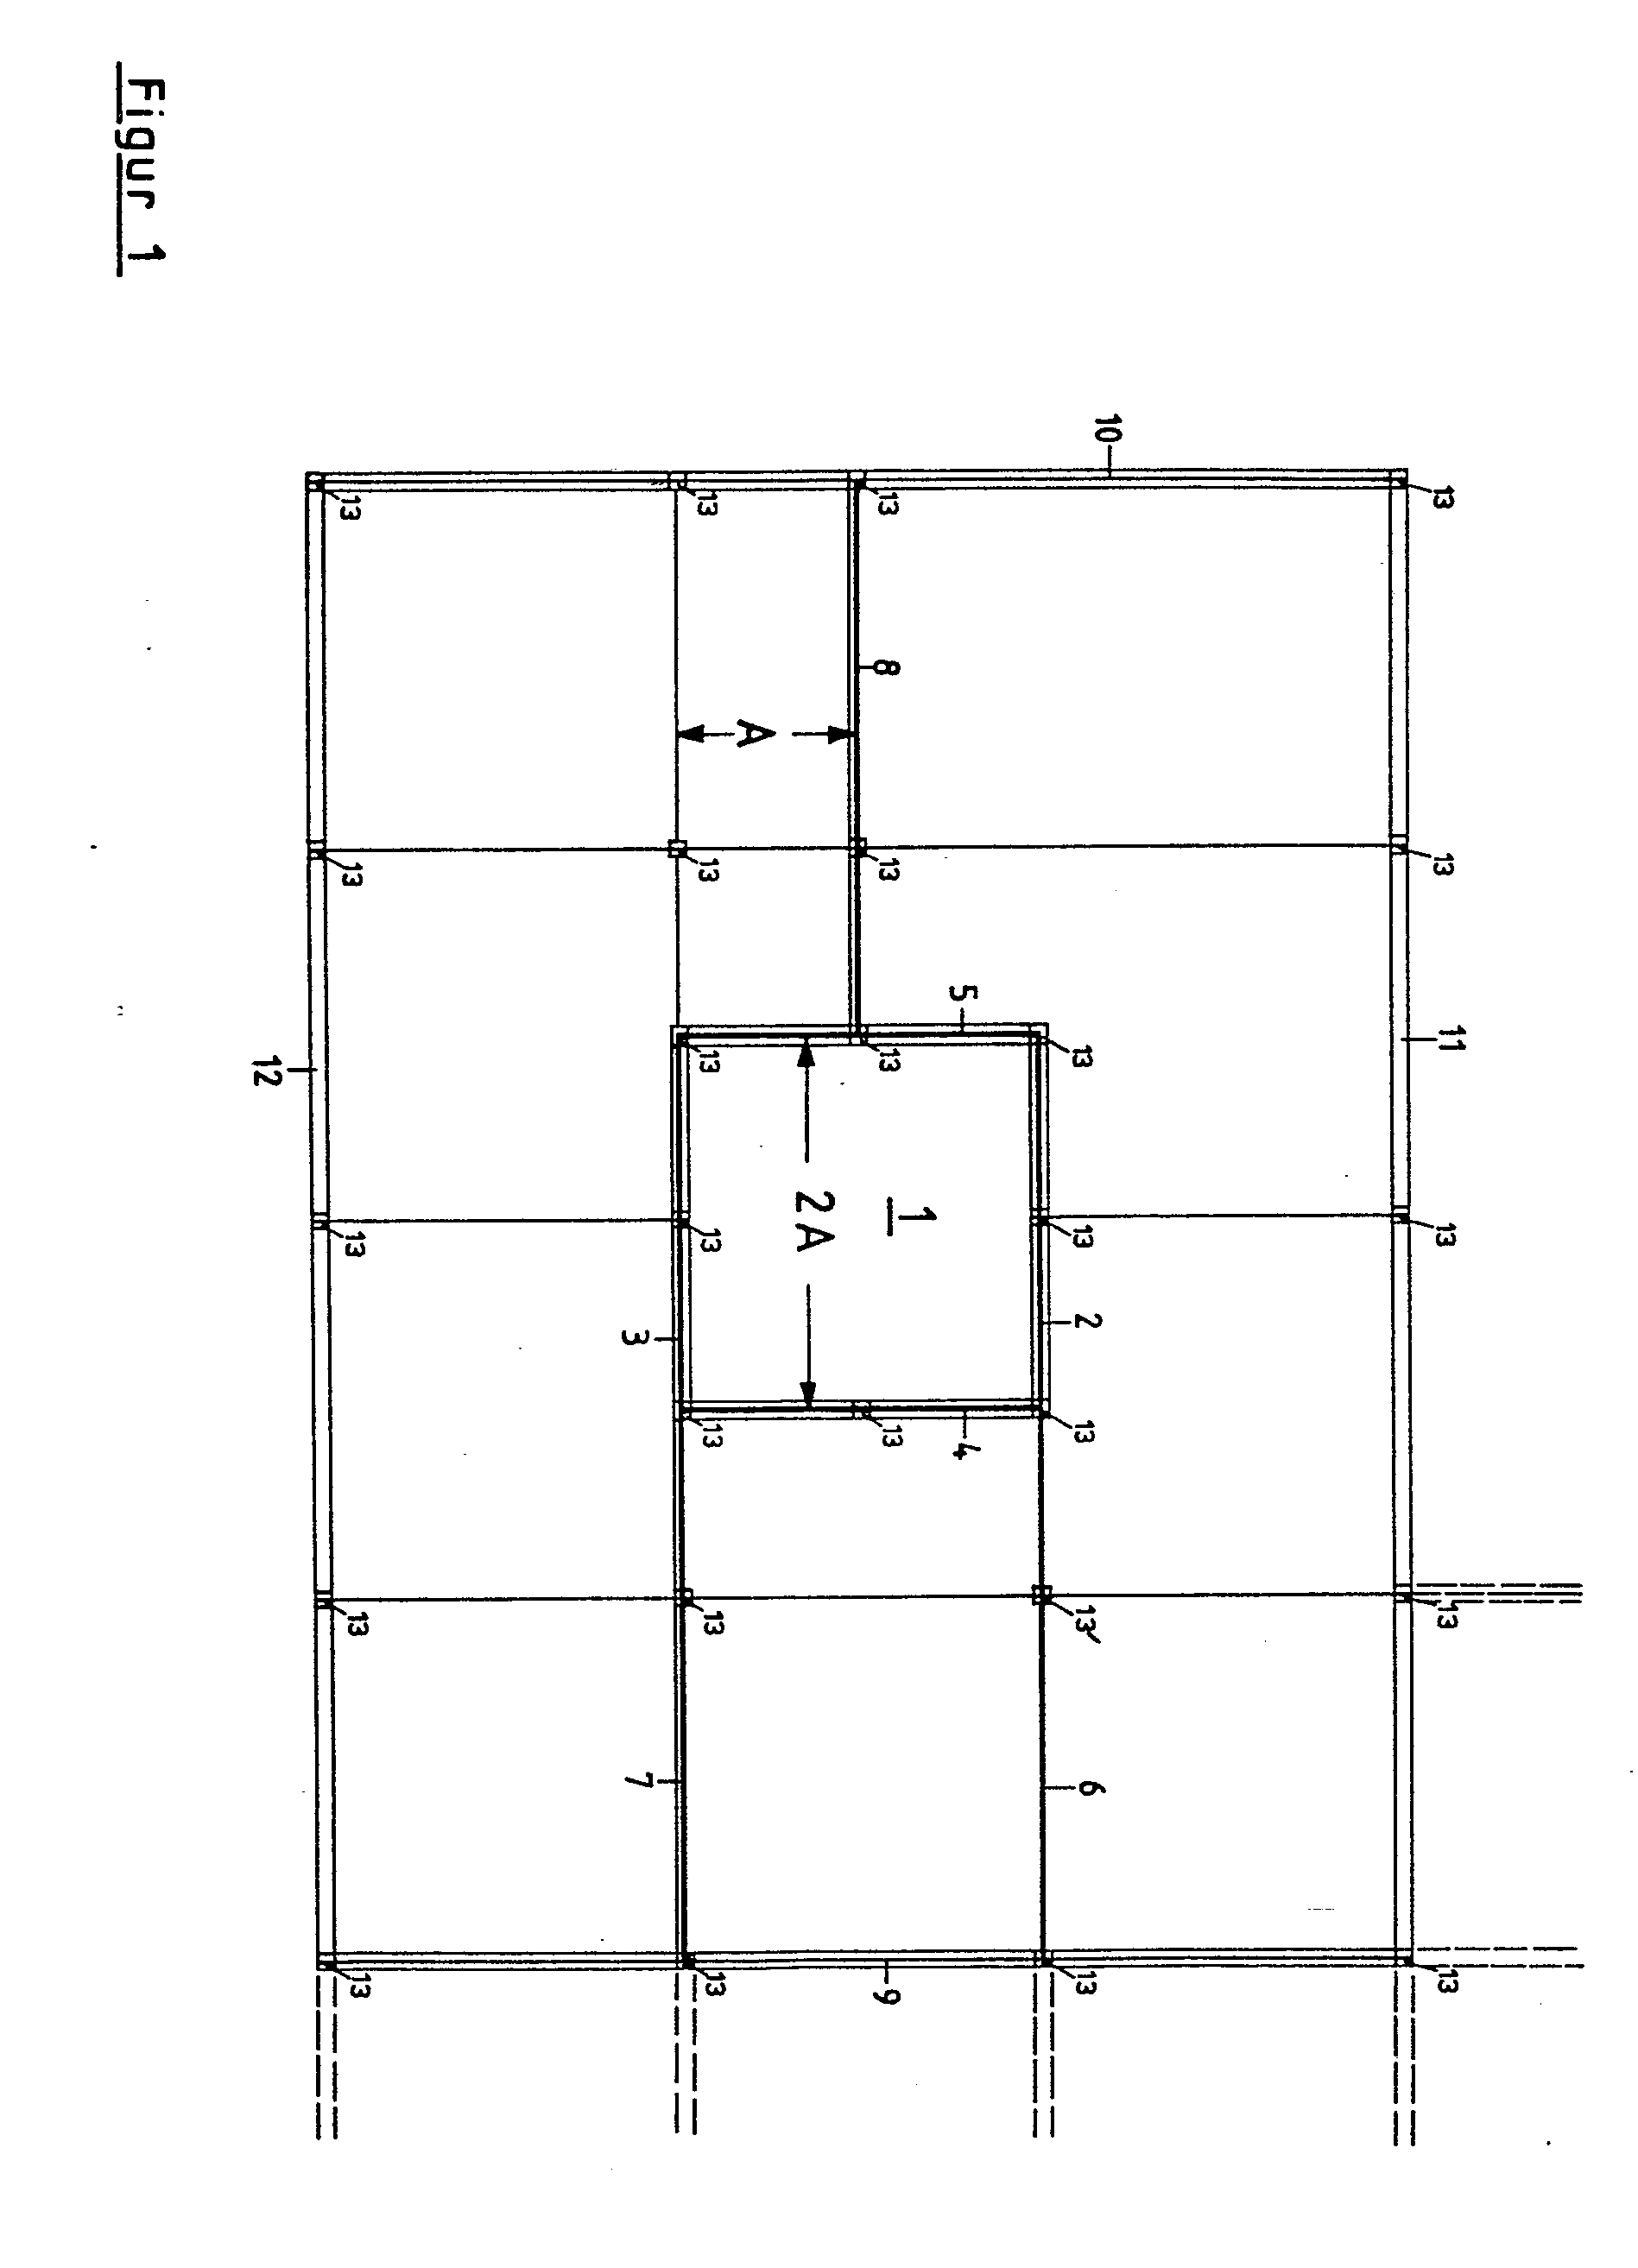 Holzskelettbauweise grundriss  Patent EP0124733A2 - Dwelling house - Google Patents